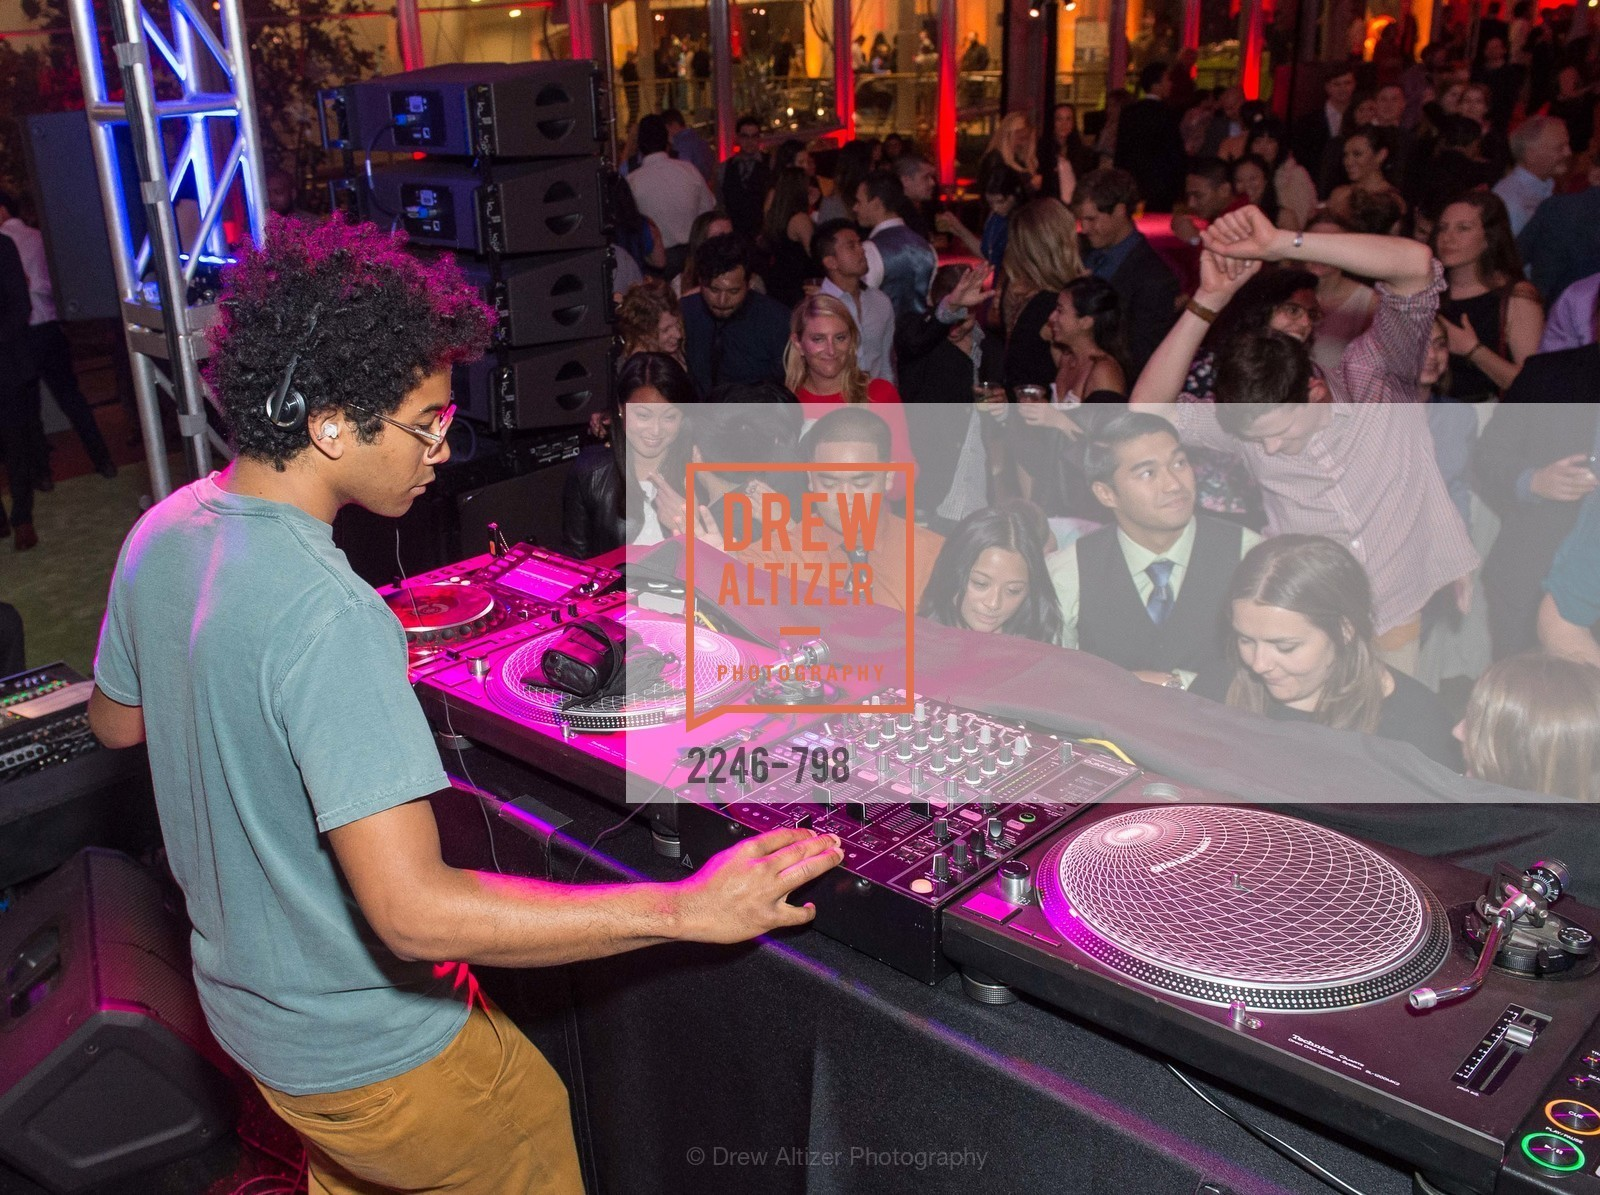 DJ Toro Y Moi, CALIFORNIA ACADEMY OF SCIENCES - Big Bang Gala 2015, US, April 24th, 2015,Drew Altizer, Drew Altizer Photography, full-service event agency, private events, San Francisco photographer, photographer California